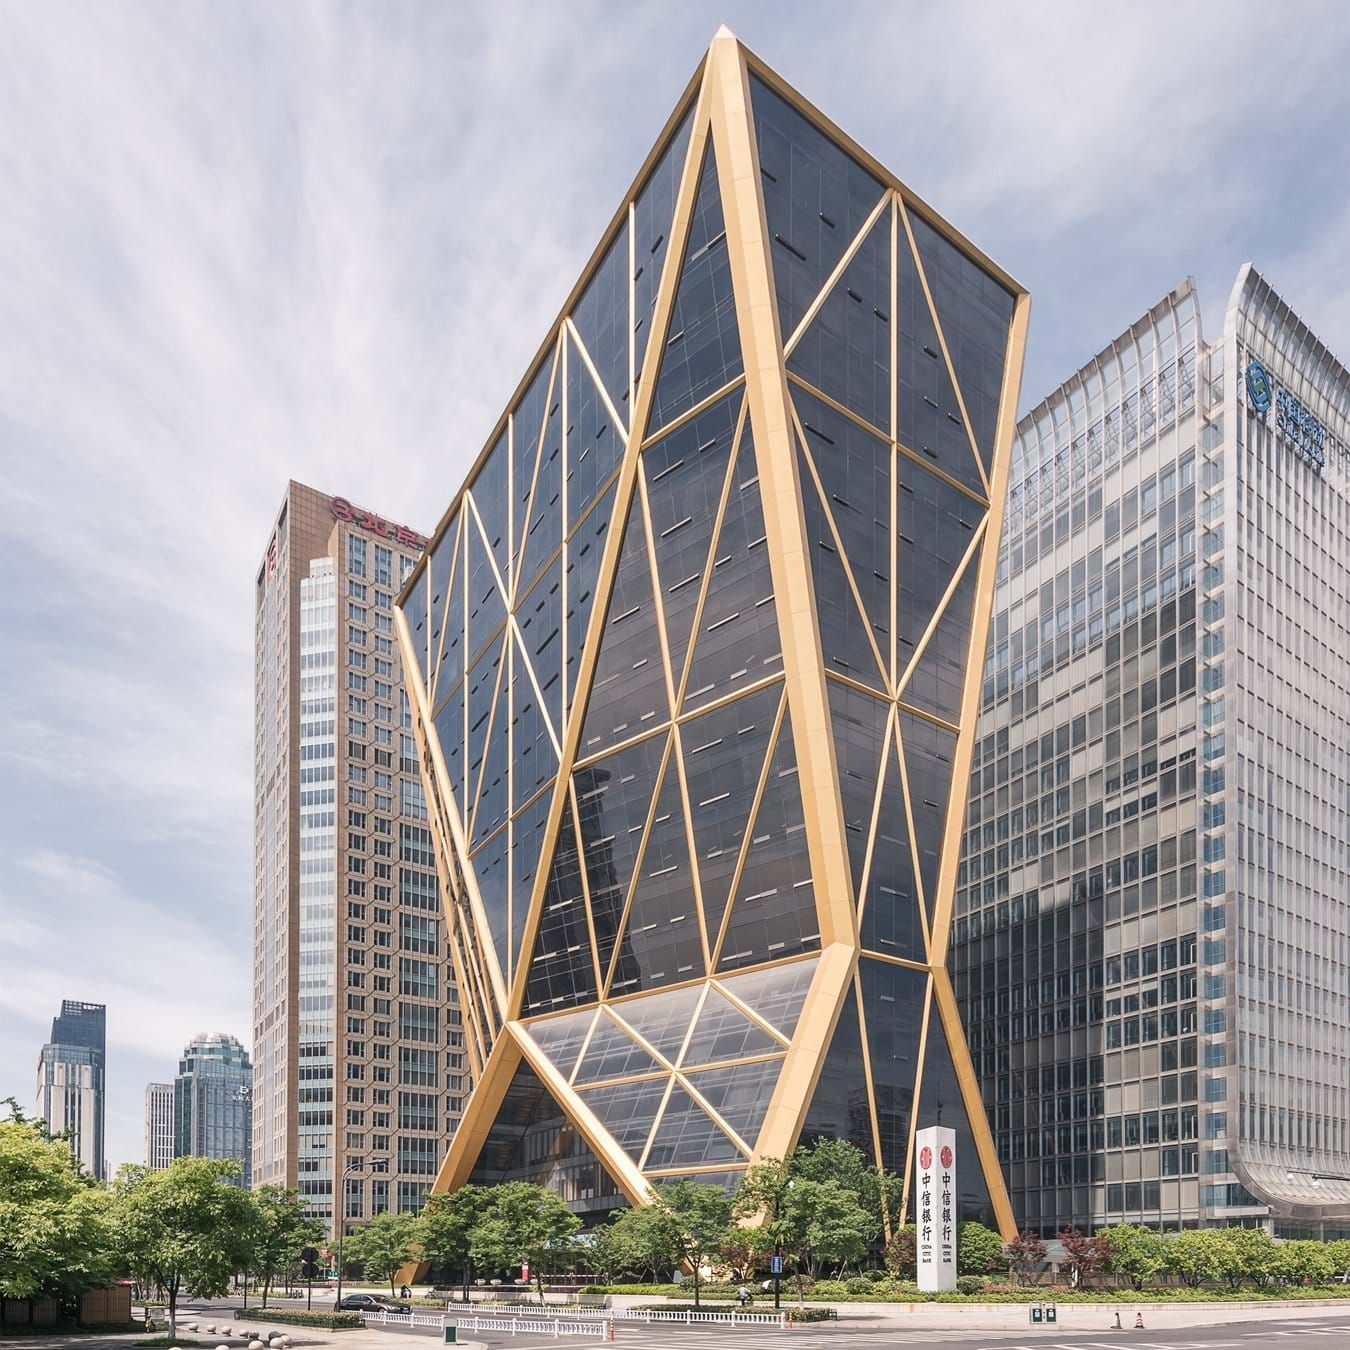 The Headquarters Tower For Citic Bank Has A Prominent Location In Hangzhou On A Main Axis Through A New Central Architect House Building Design Archi